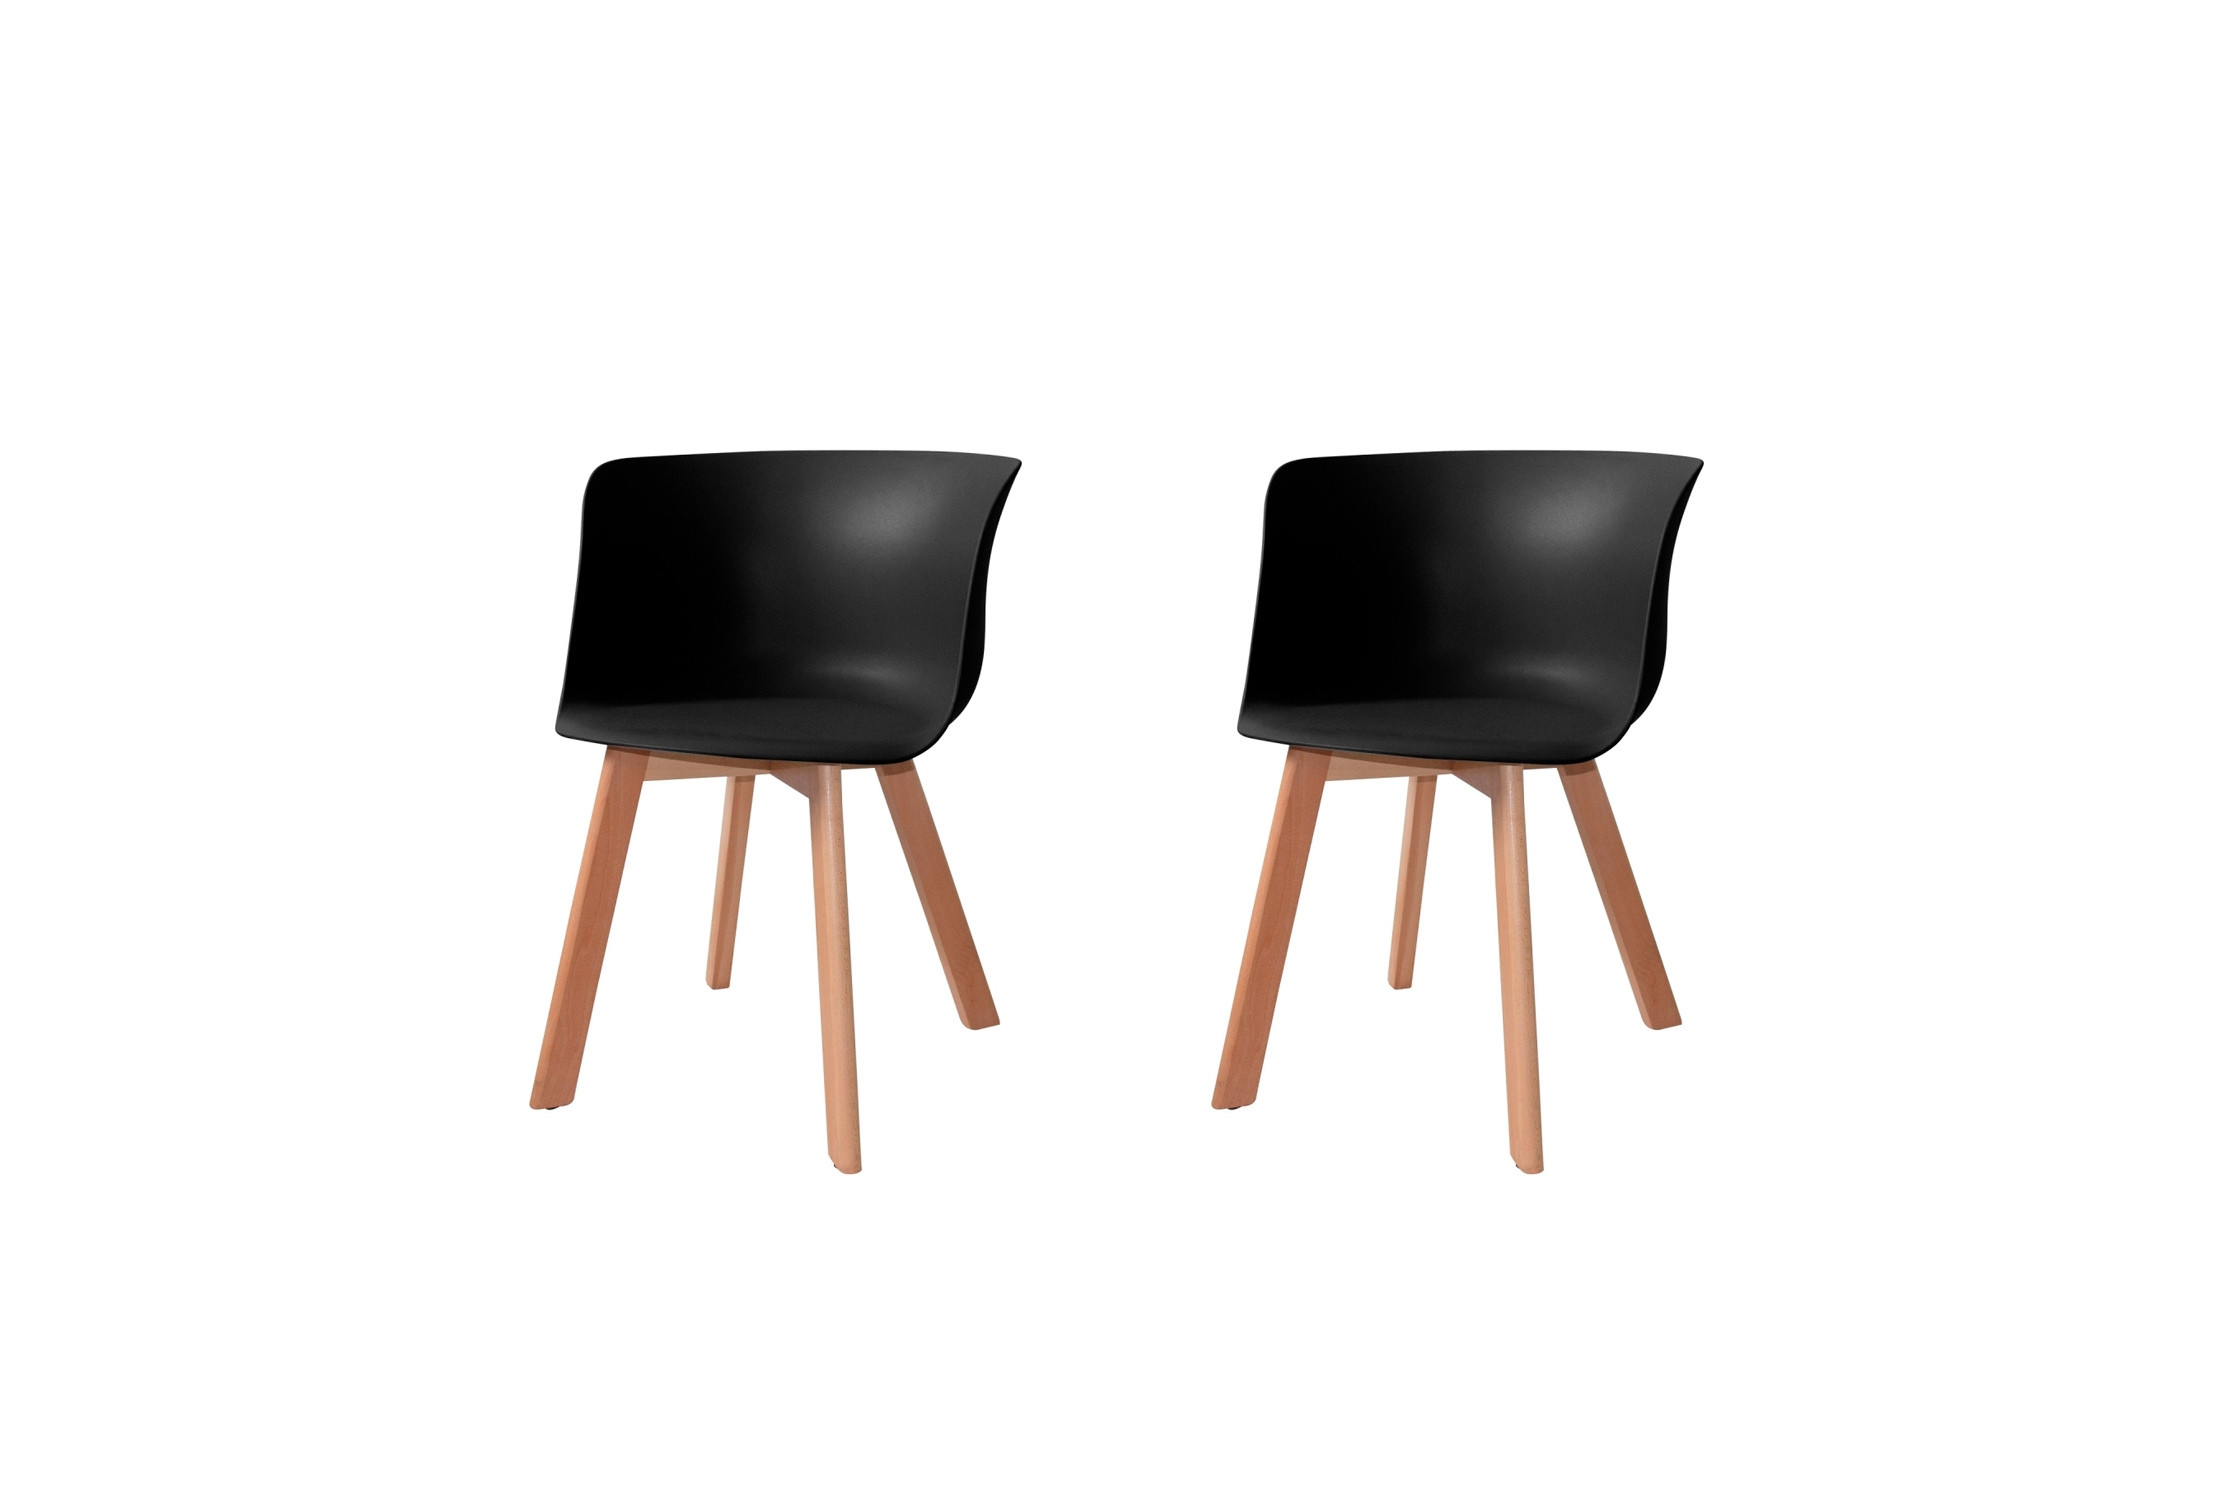 PACK 2 SILLONES WINTER WOOD NEGROS